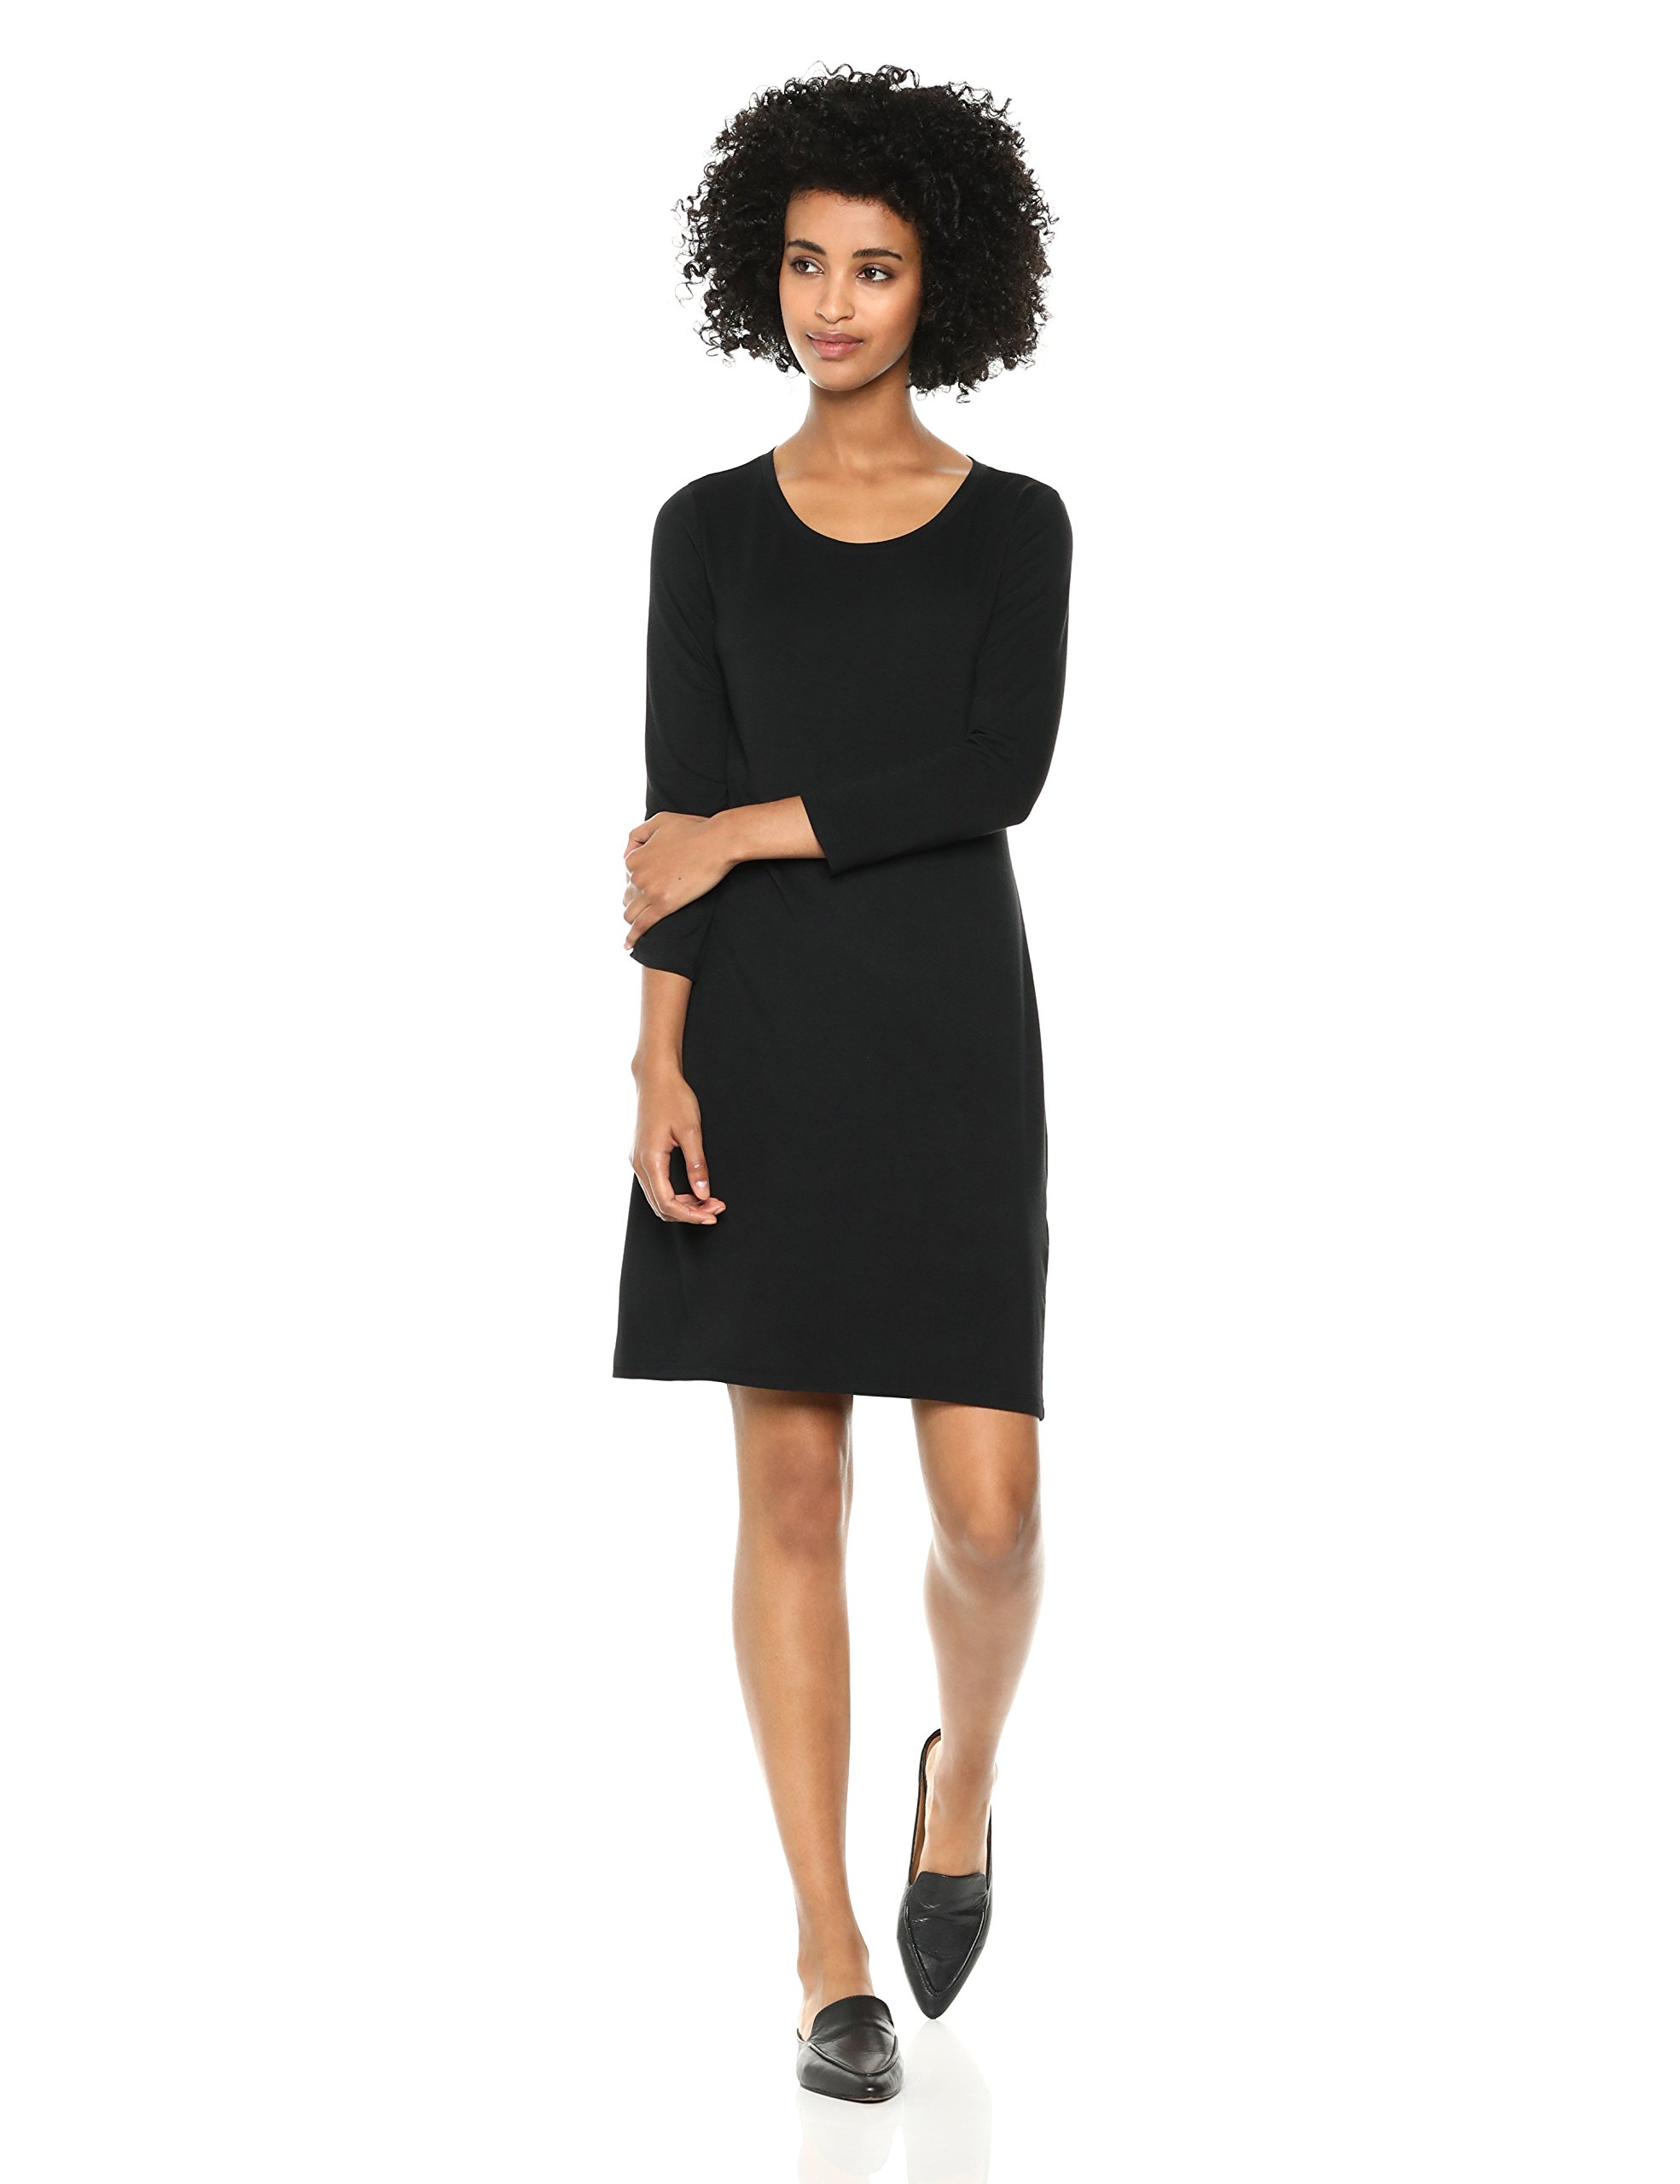 Daily Ritual Women's Jersey 3/4-Sleeve Scoop-Neck T-Shirt Dress, Black, Small